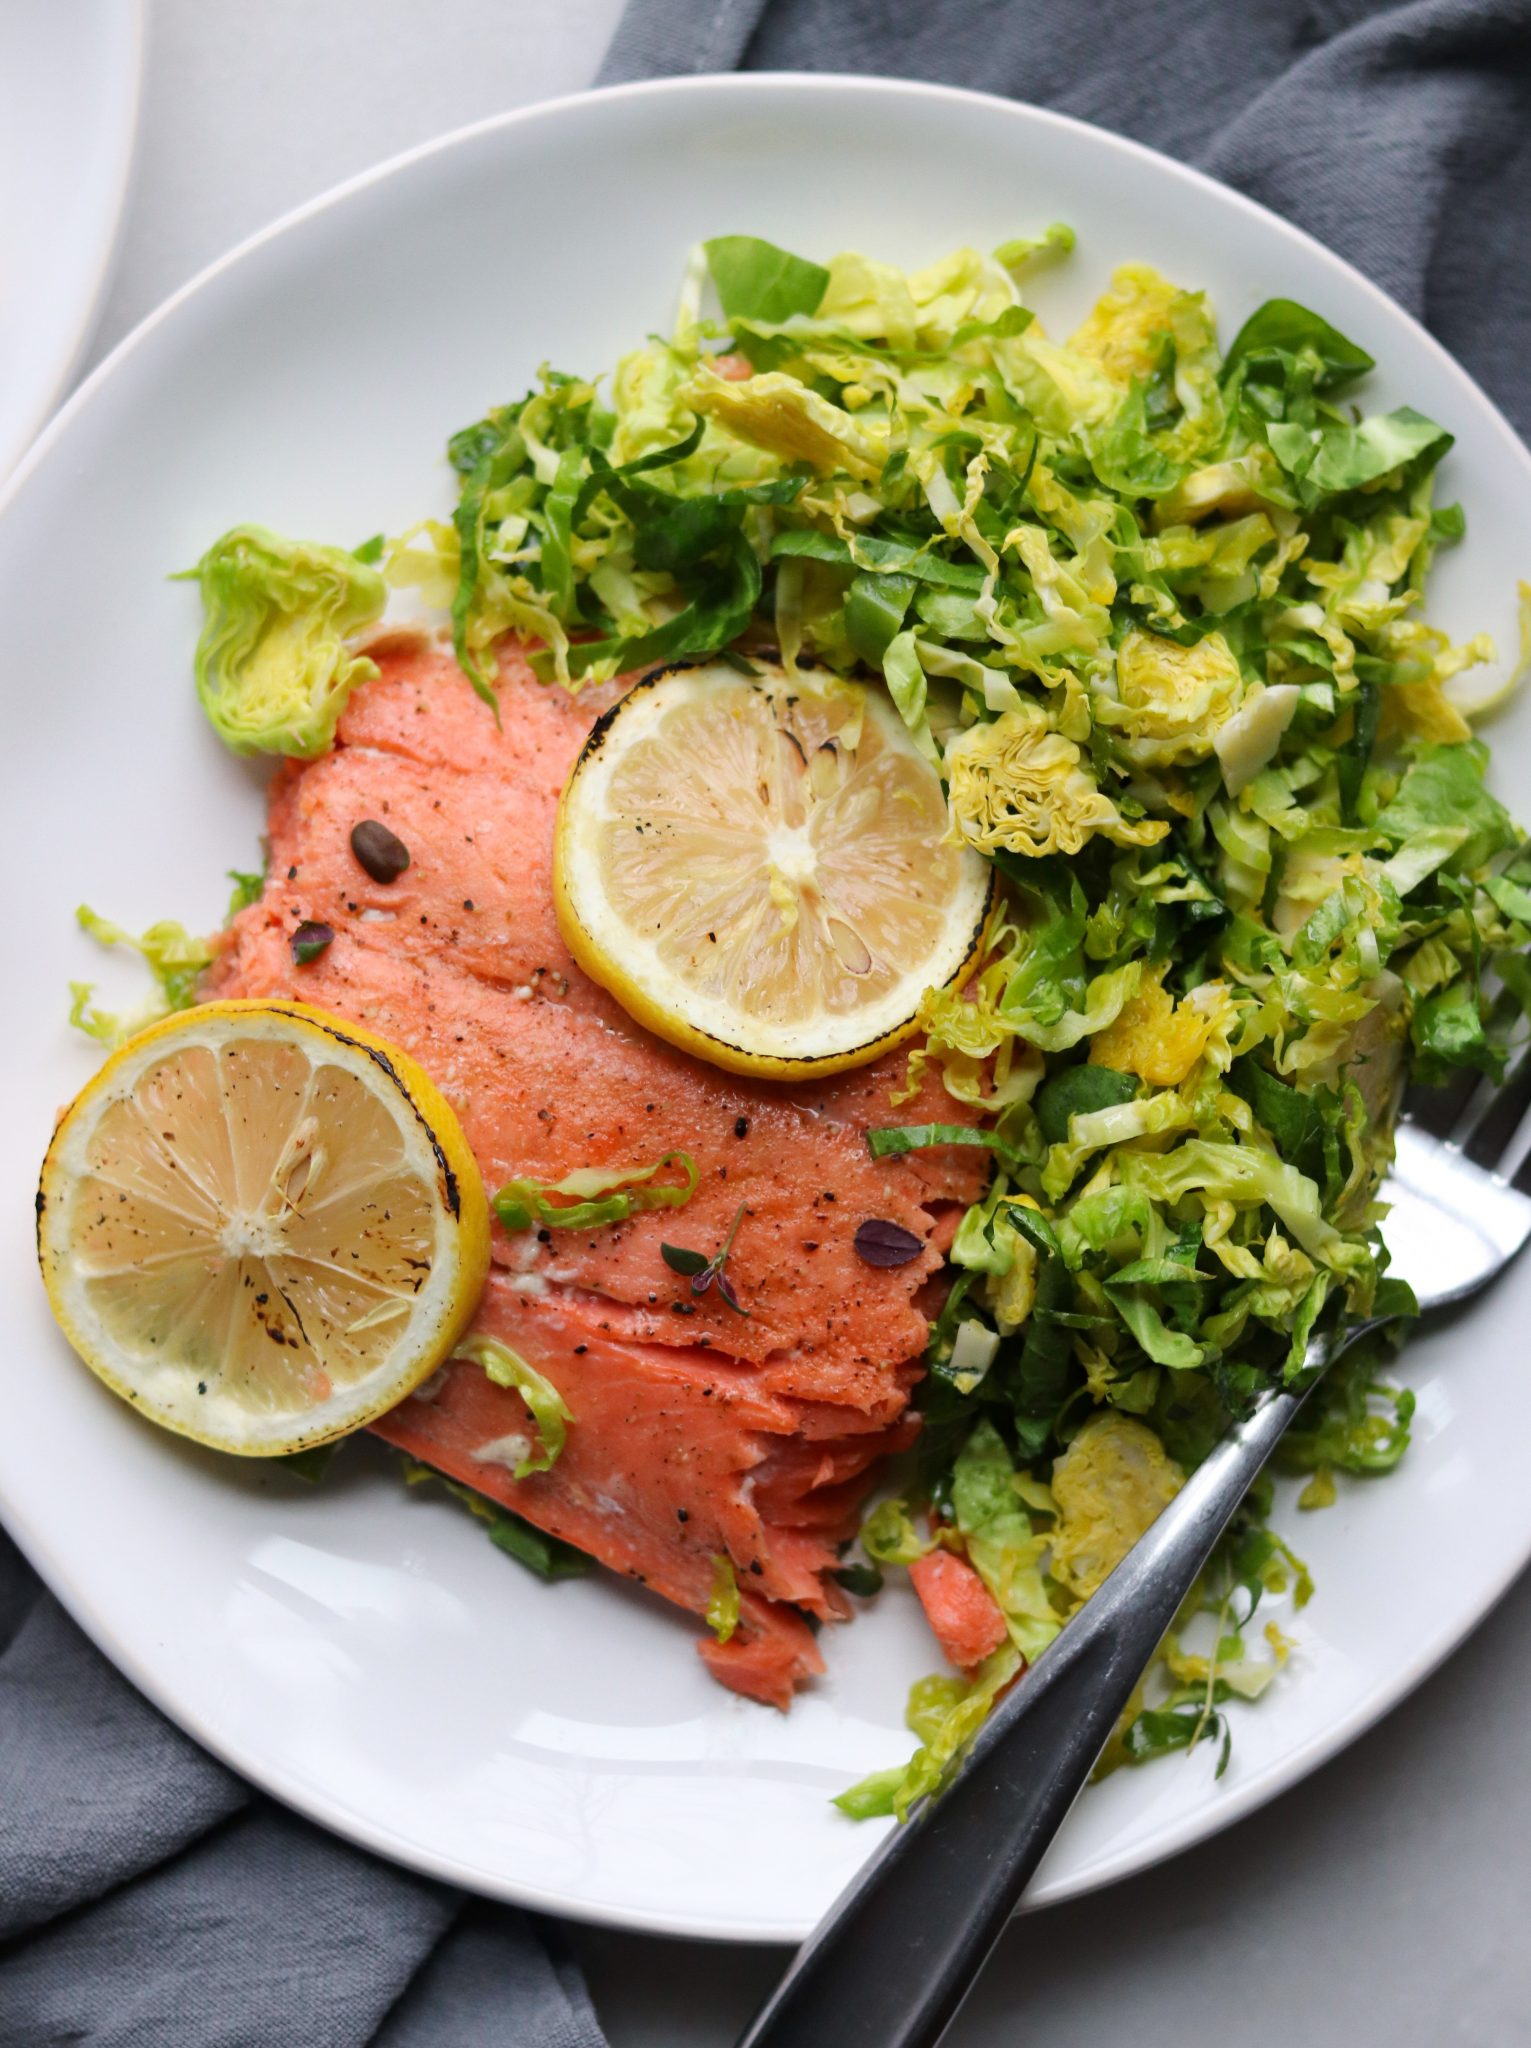 Roasted Salmon is set on a white plate with slices of lemon. The Brussels sprouts salad is on the side. Finished Dish, Plated